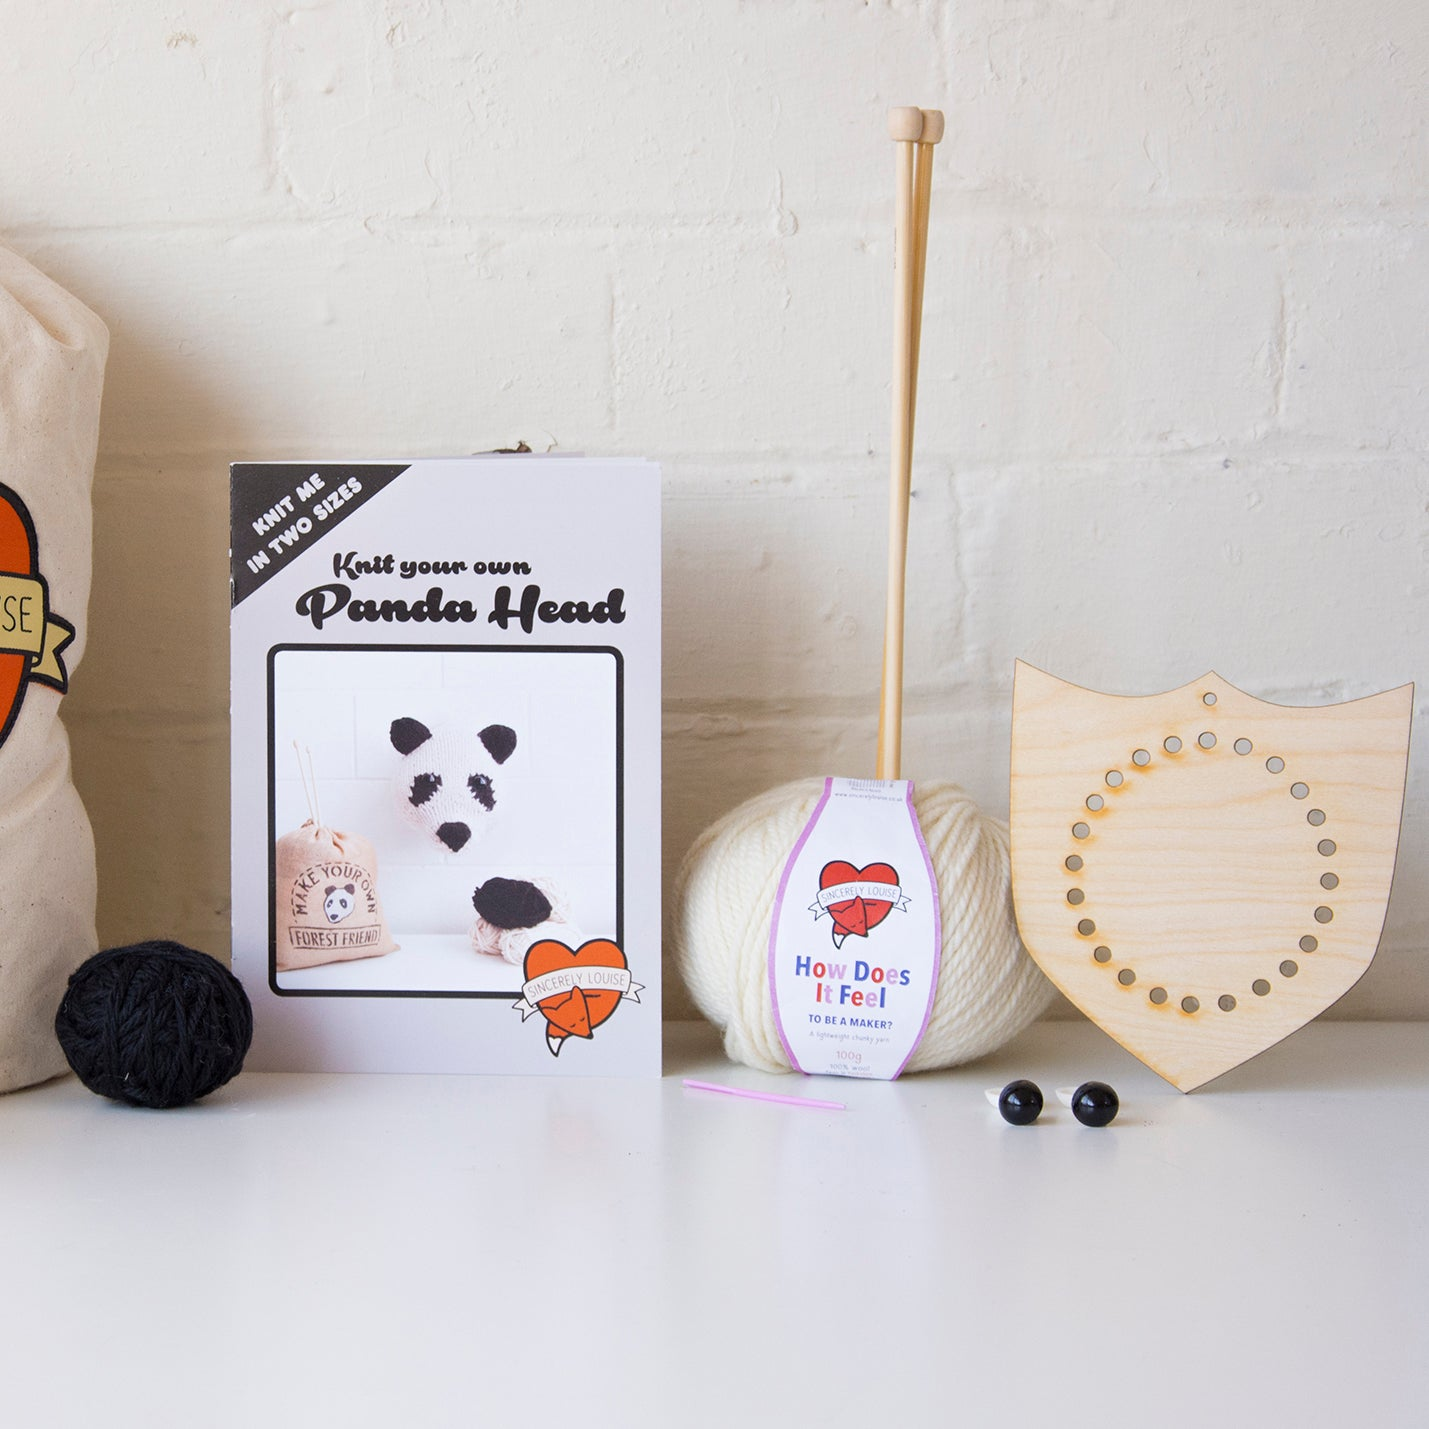 Mini Panda Head Knitting Kit (4594246484100)